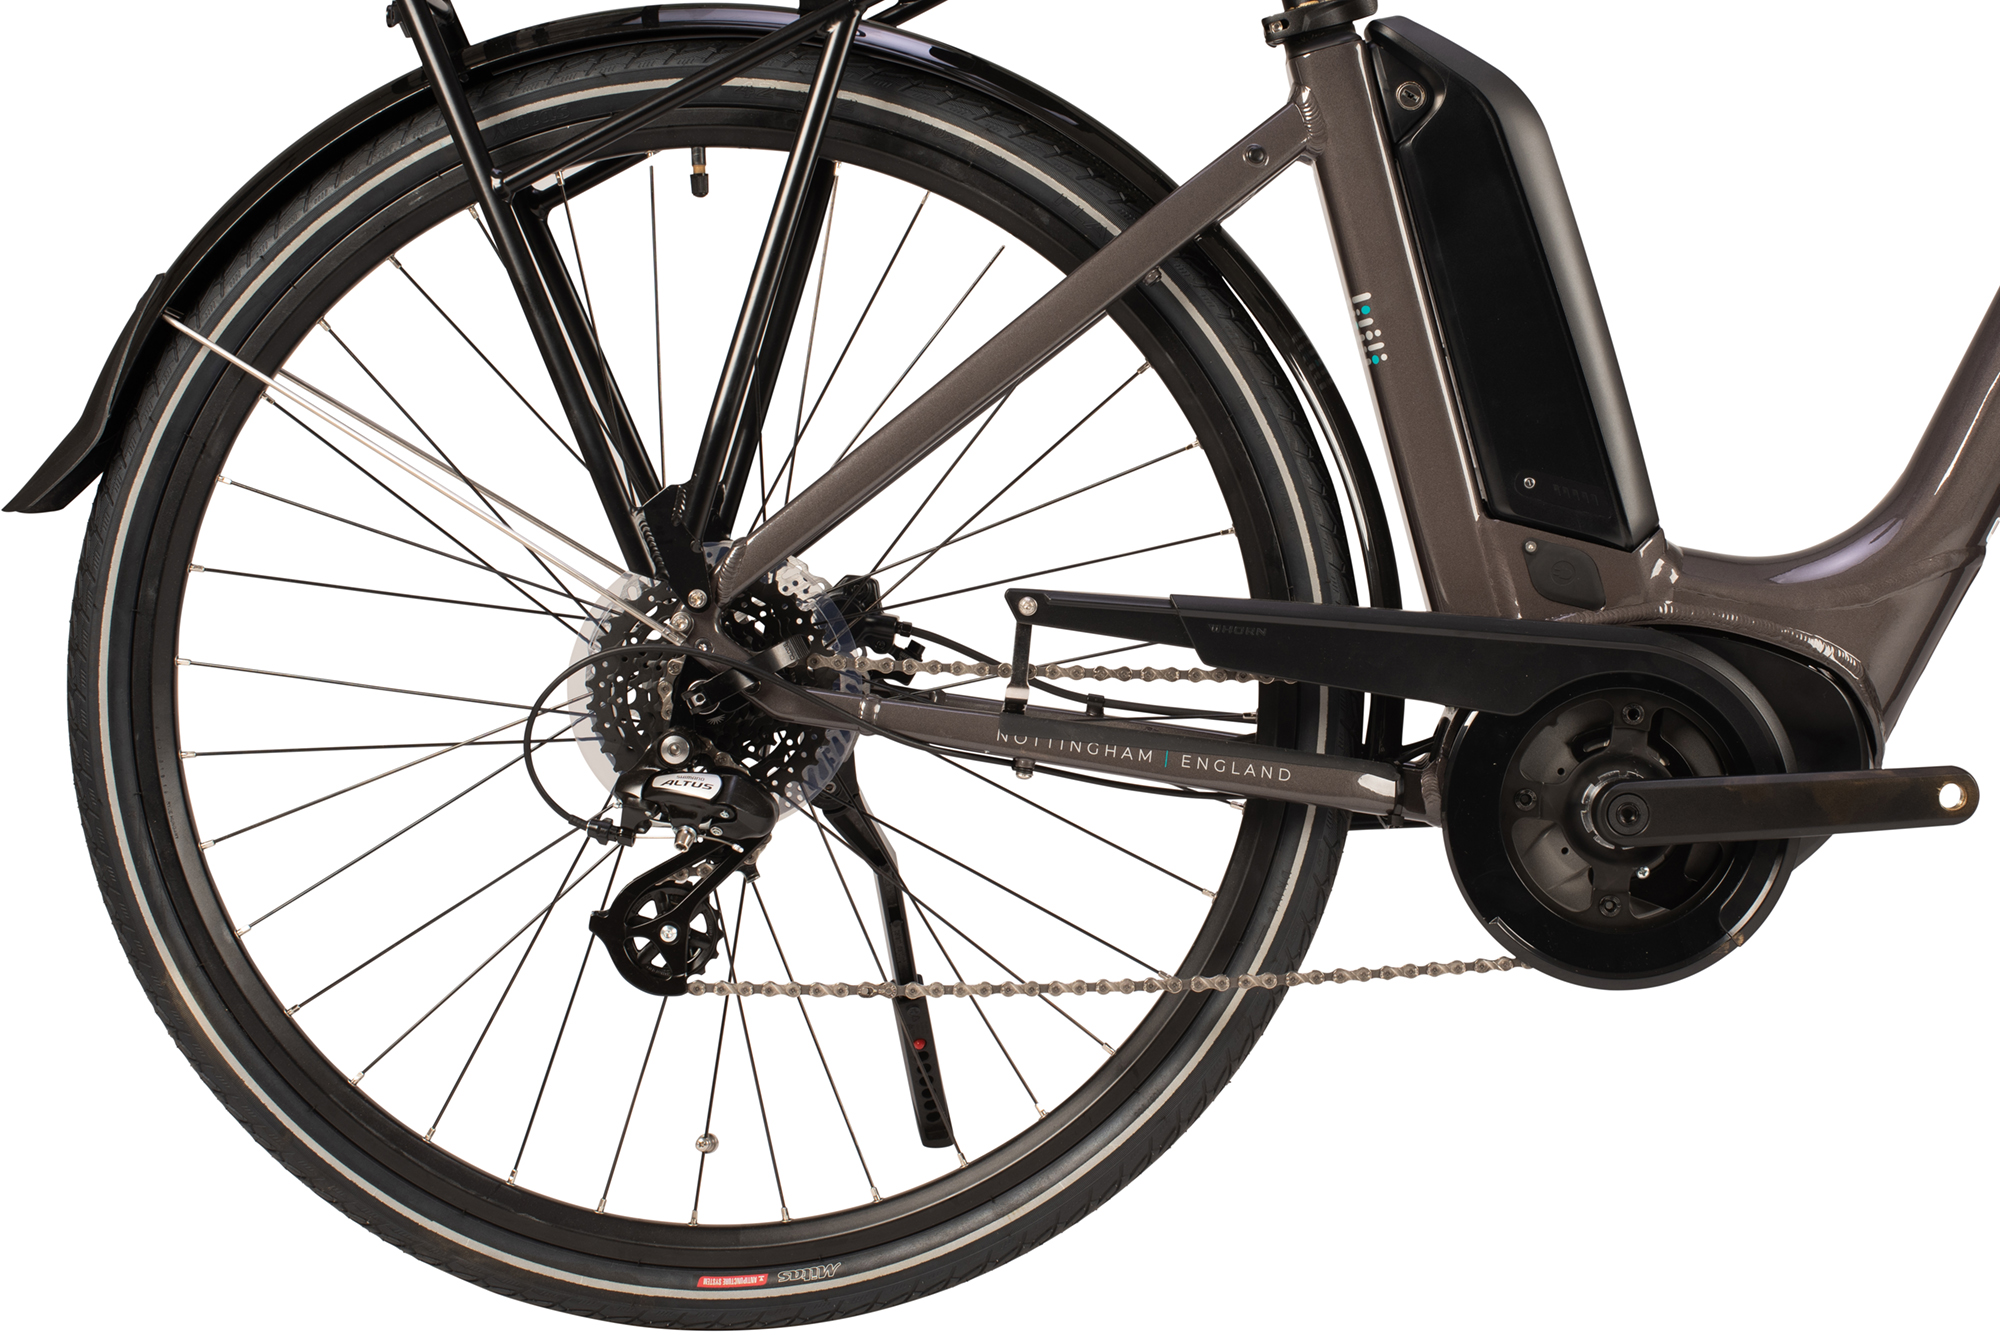 View of rear of the Raleigh Motus Low Step electric bike in grey colour